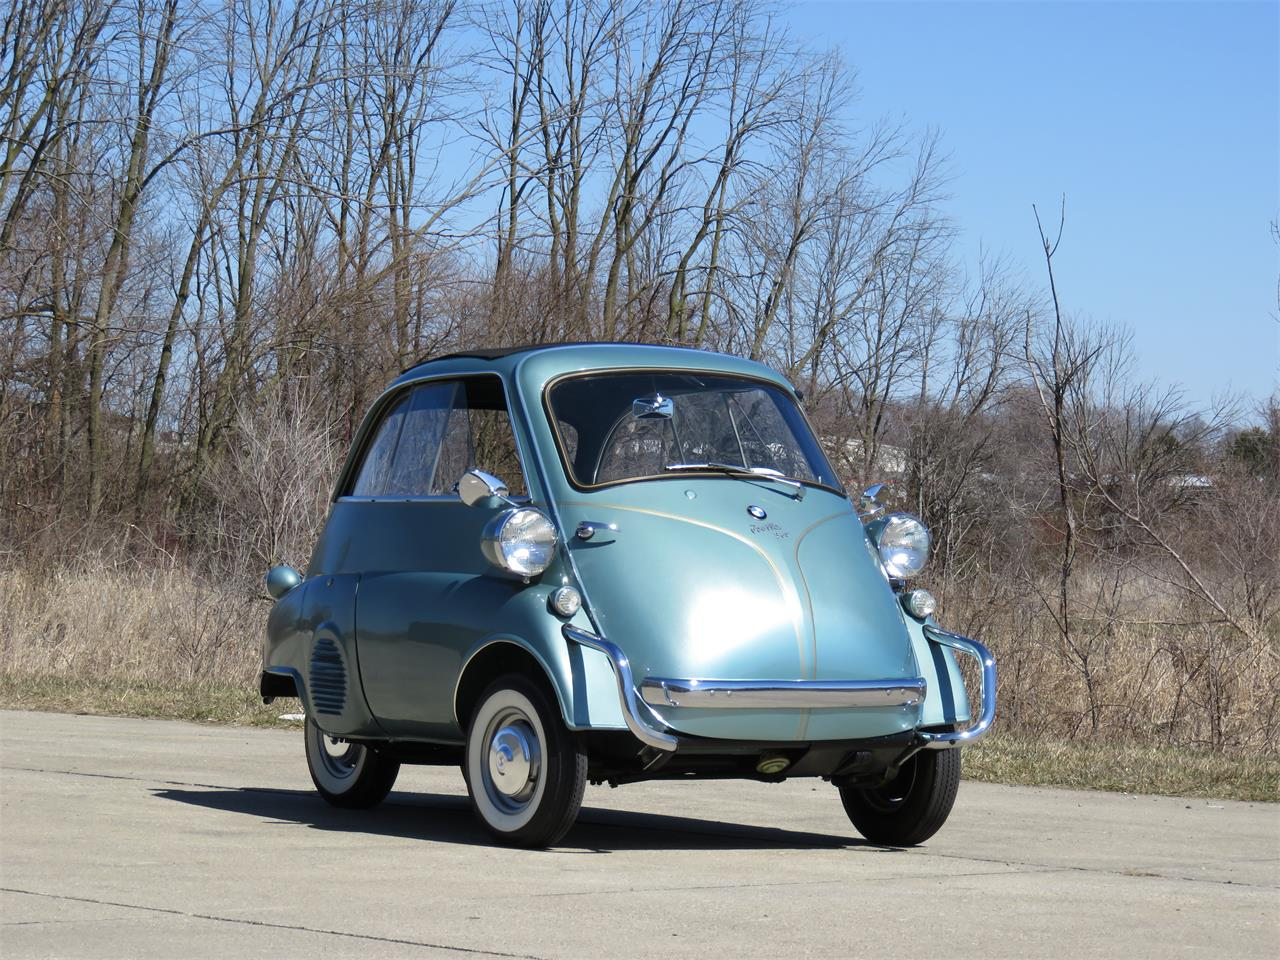 Large Picture of Classic 1958 BMW Isetta located in Kokomo Indiana Auction Vehicle Offered by Earlywine Auctions - N3EA